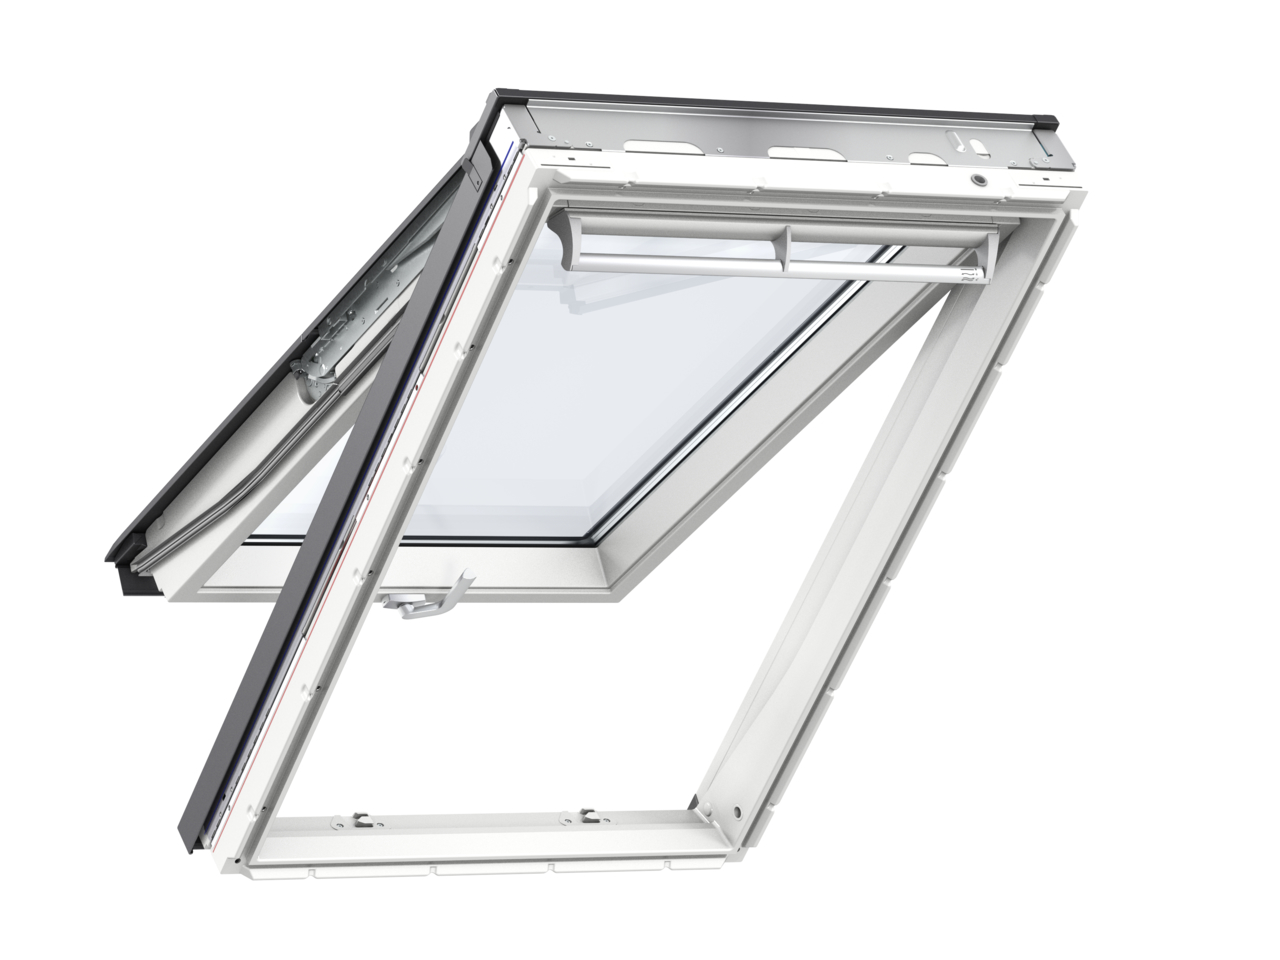 Velux GPU UK08 1340 x 1600mm Top Hung 60Pane Roof Window - White Polyurethane